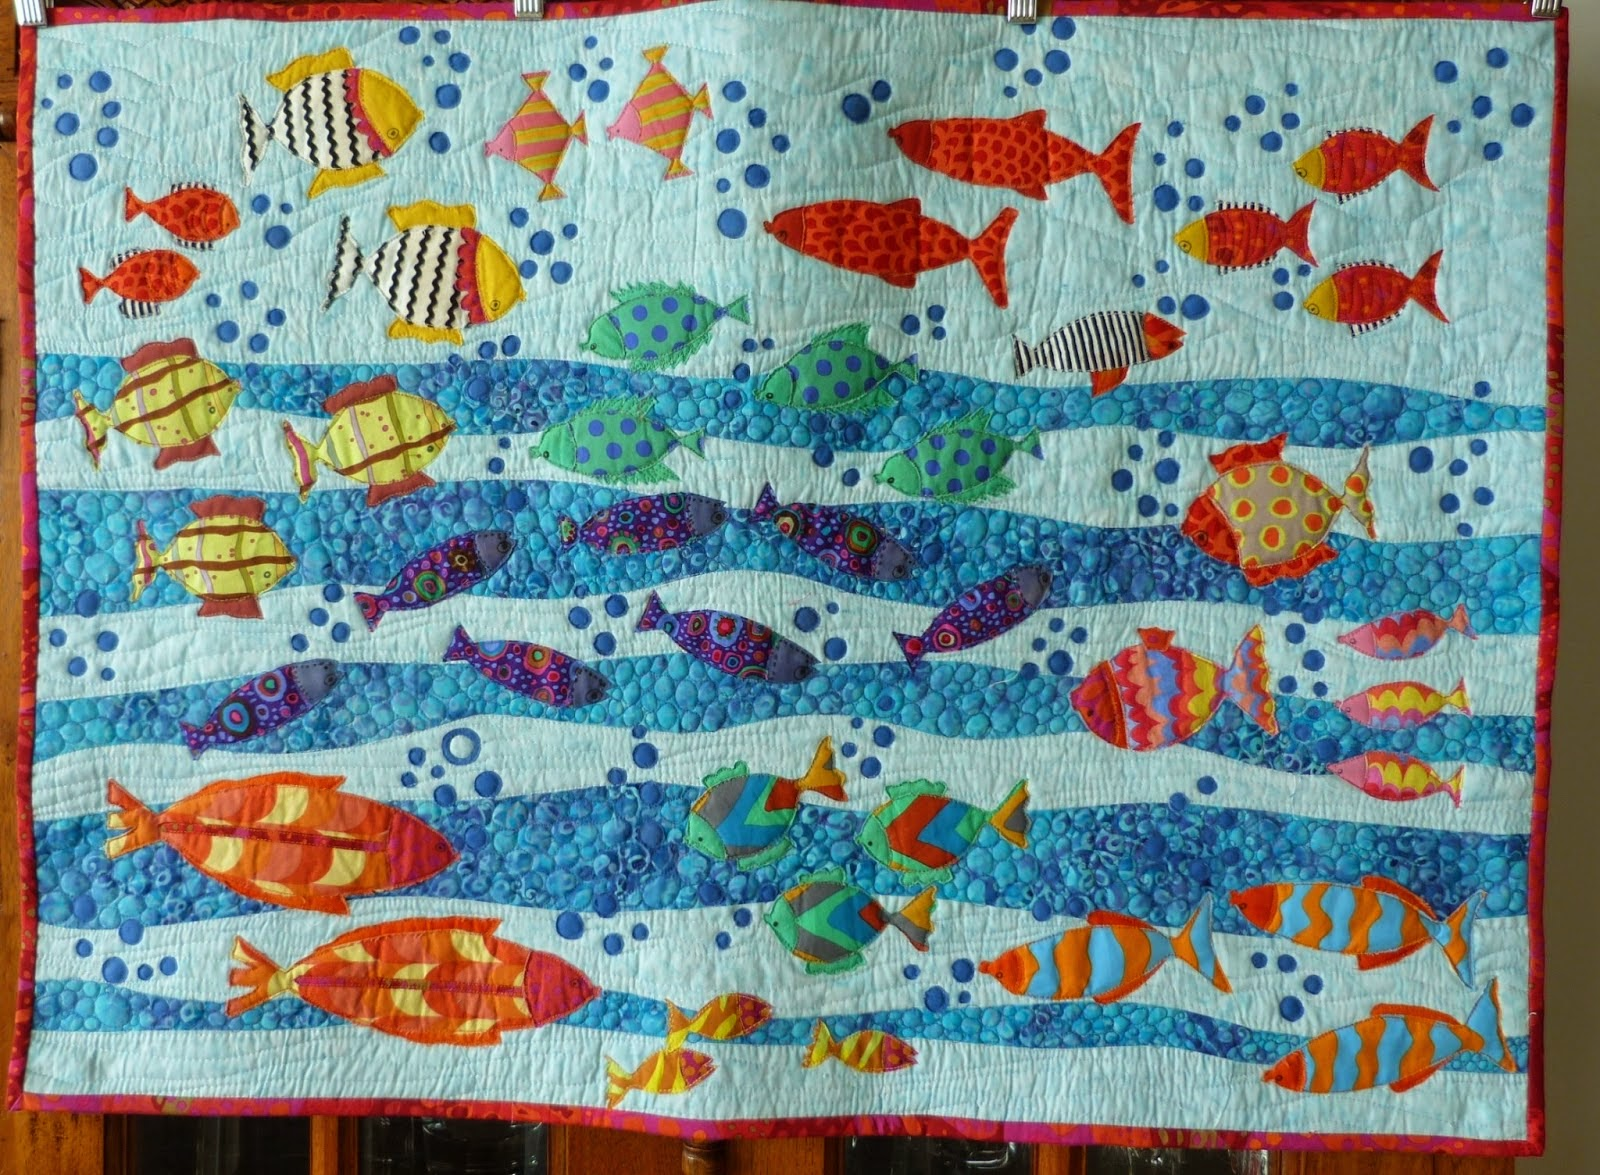 stripe blake fish quilter fabric flutter quilting the tqf blue shop collection quilt quilted collage riley stitches rb